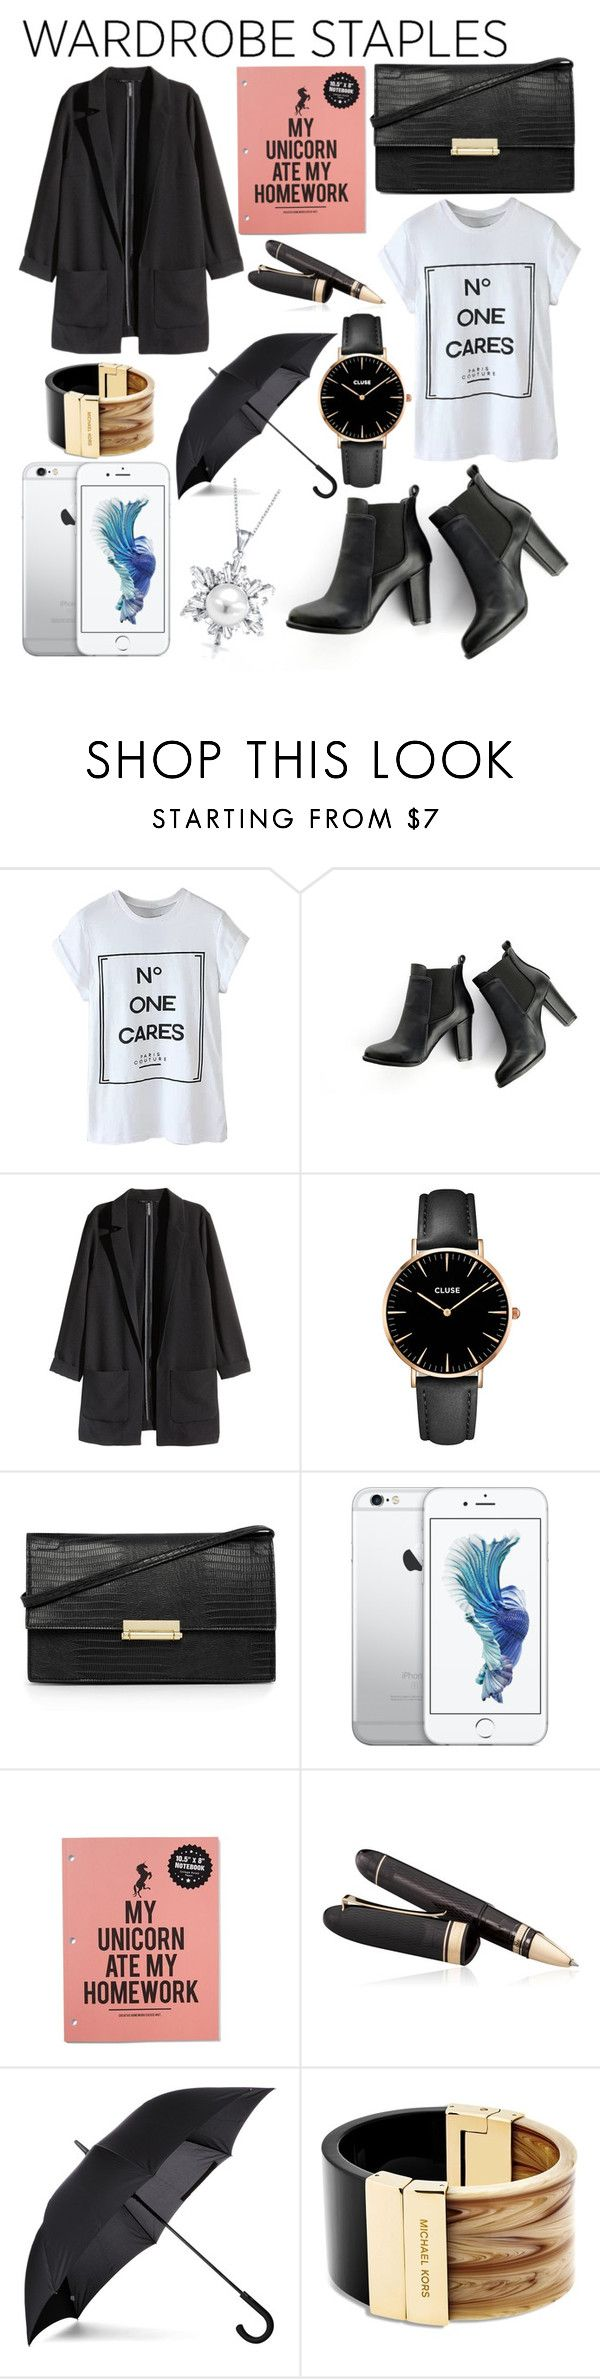 """Wardrobe Staple: White T-Shirt"" by voguefully ❤ liked on Polyvore featuring SWEET MANGO, H&M, CLUSE, Warehouse, OMAS, Fulton, Michael Kors and Bling Jewelry"